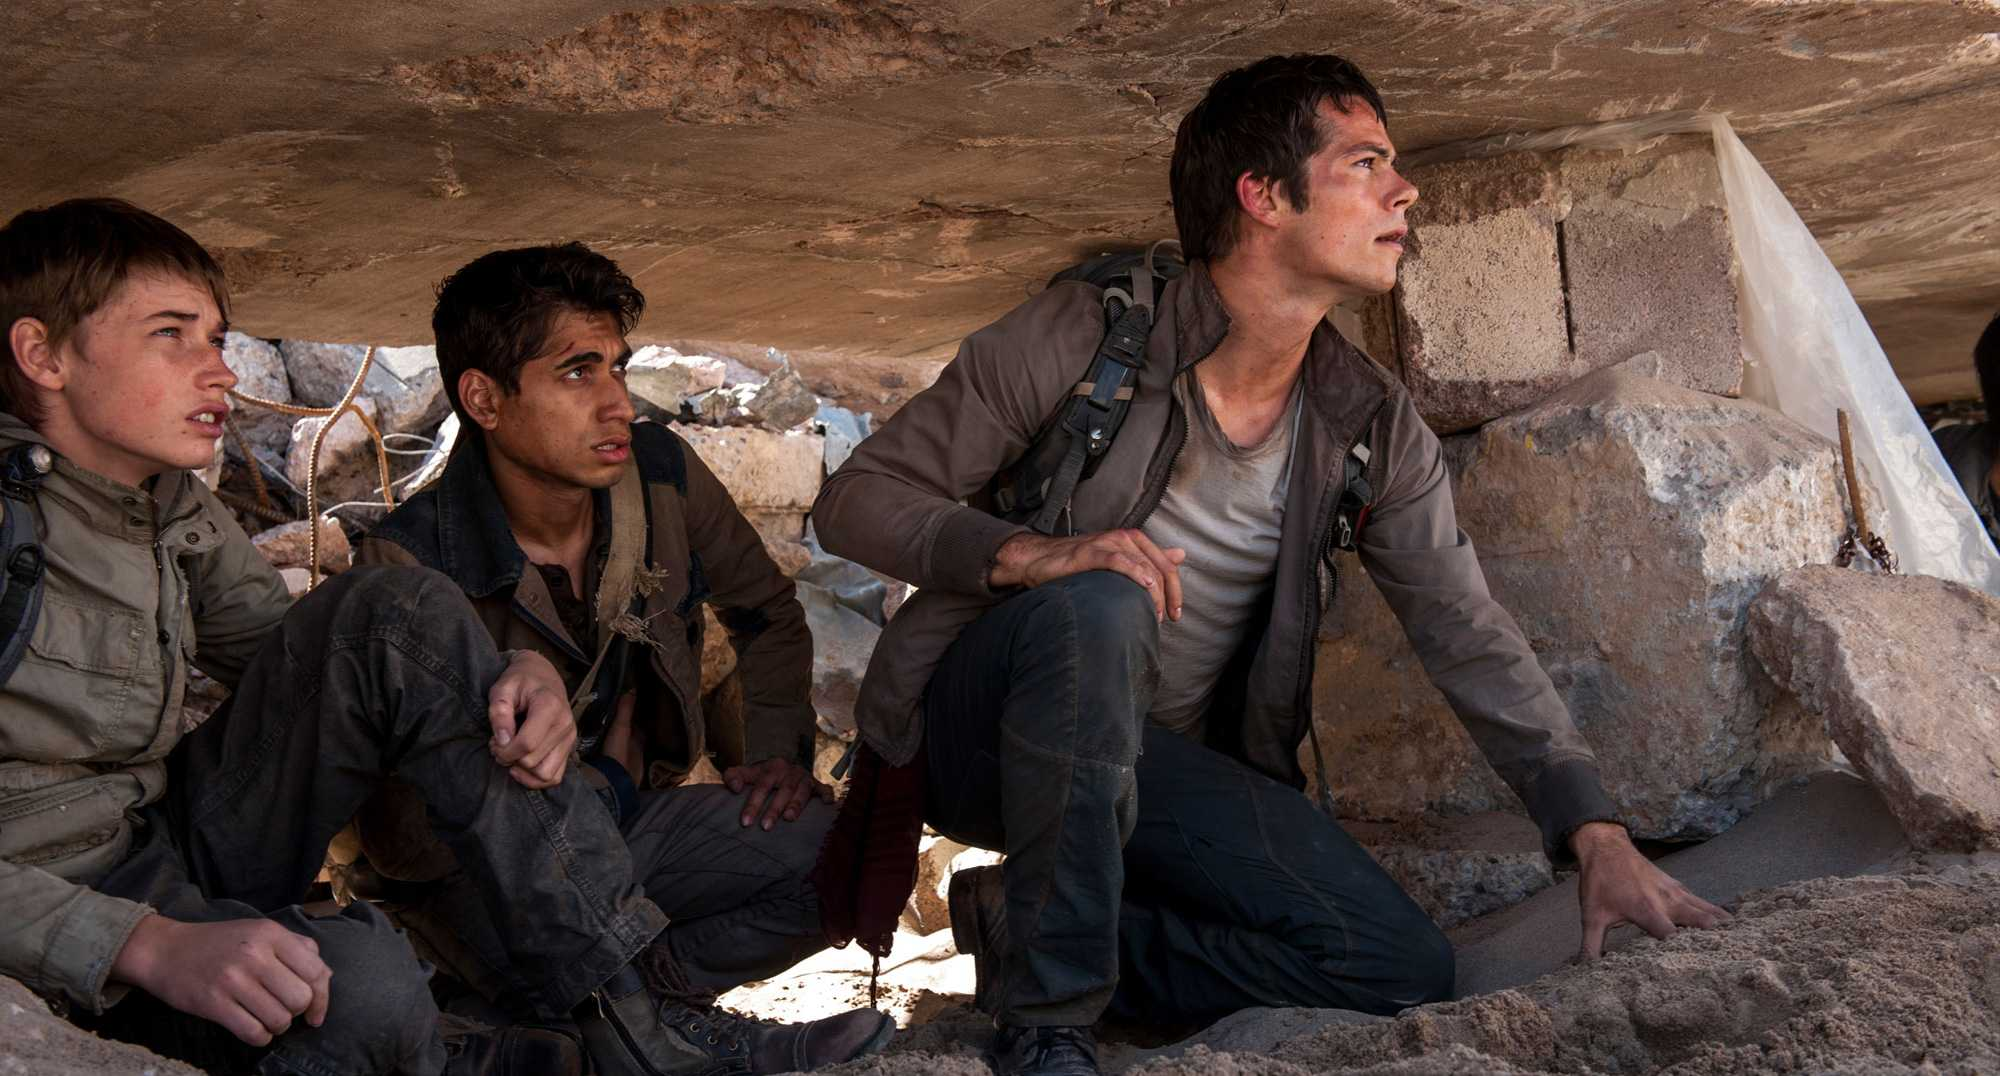 'Maze Runner: Scorch Trials' is now playing at Marcus Twin Creek Cinemas.